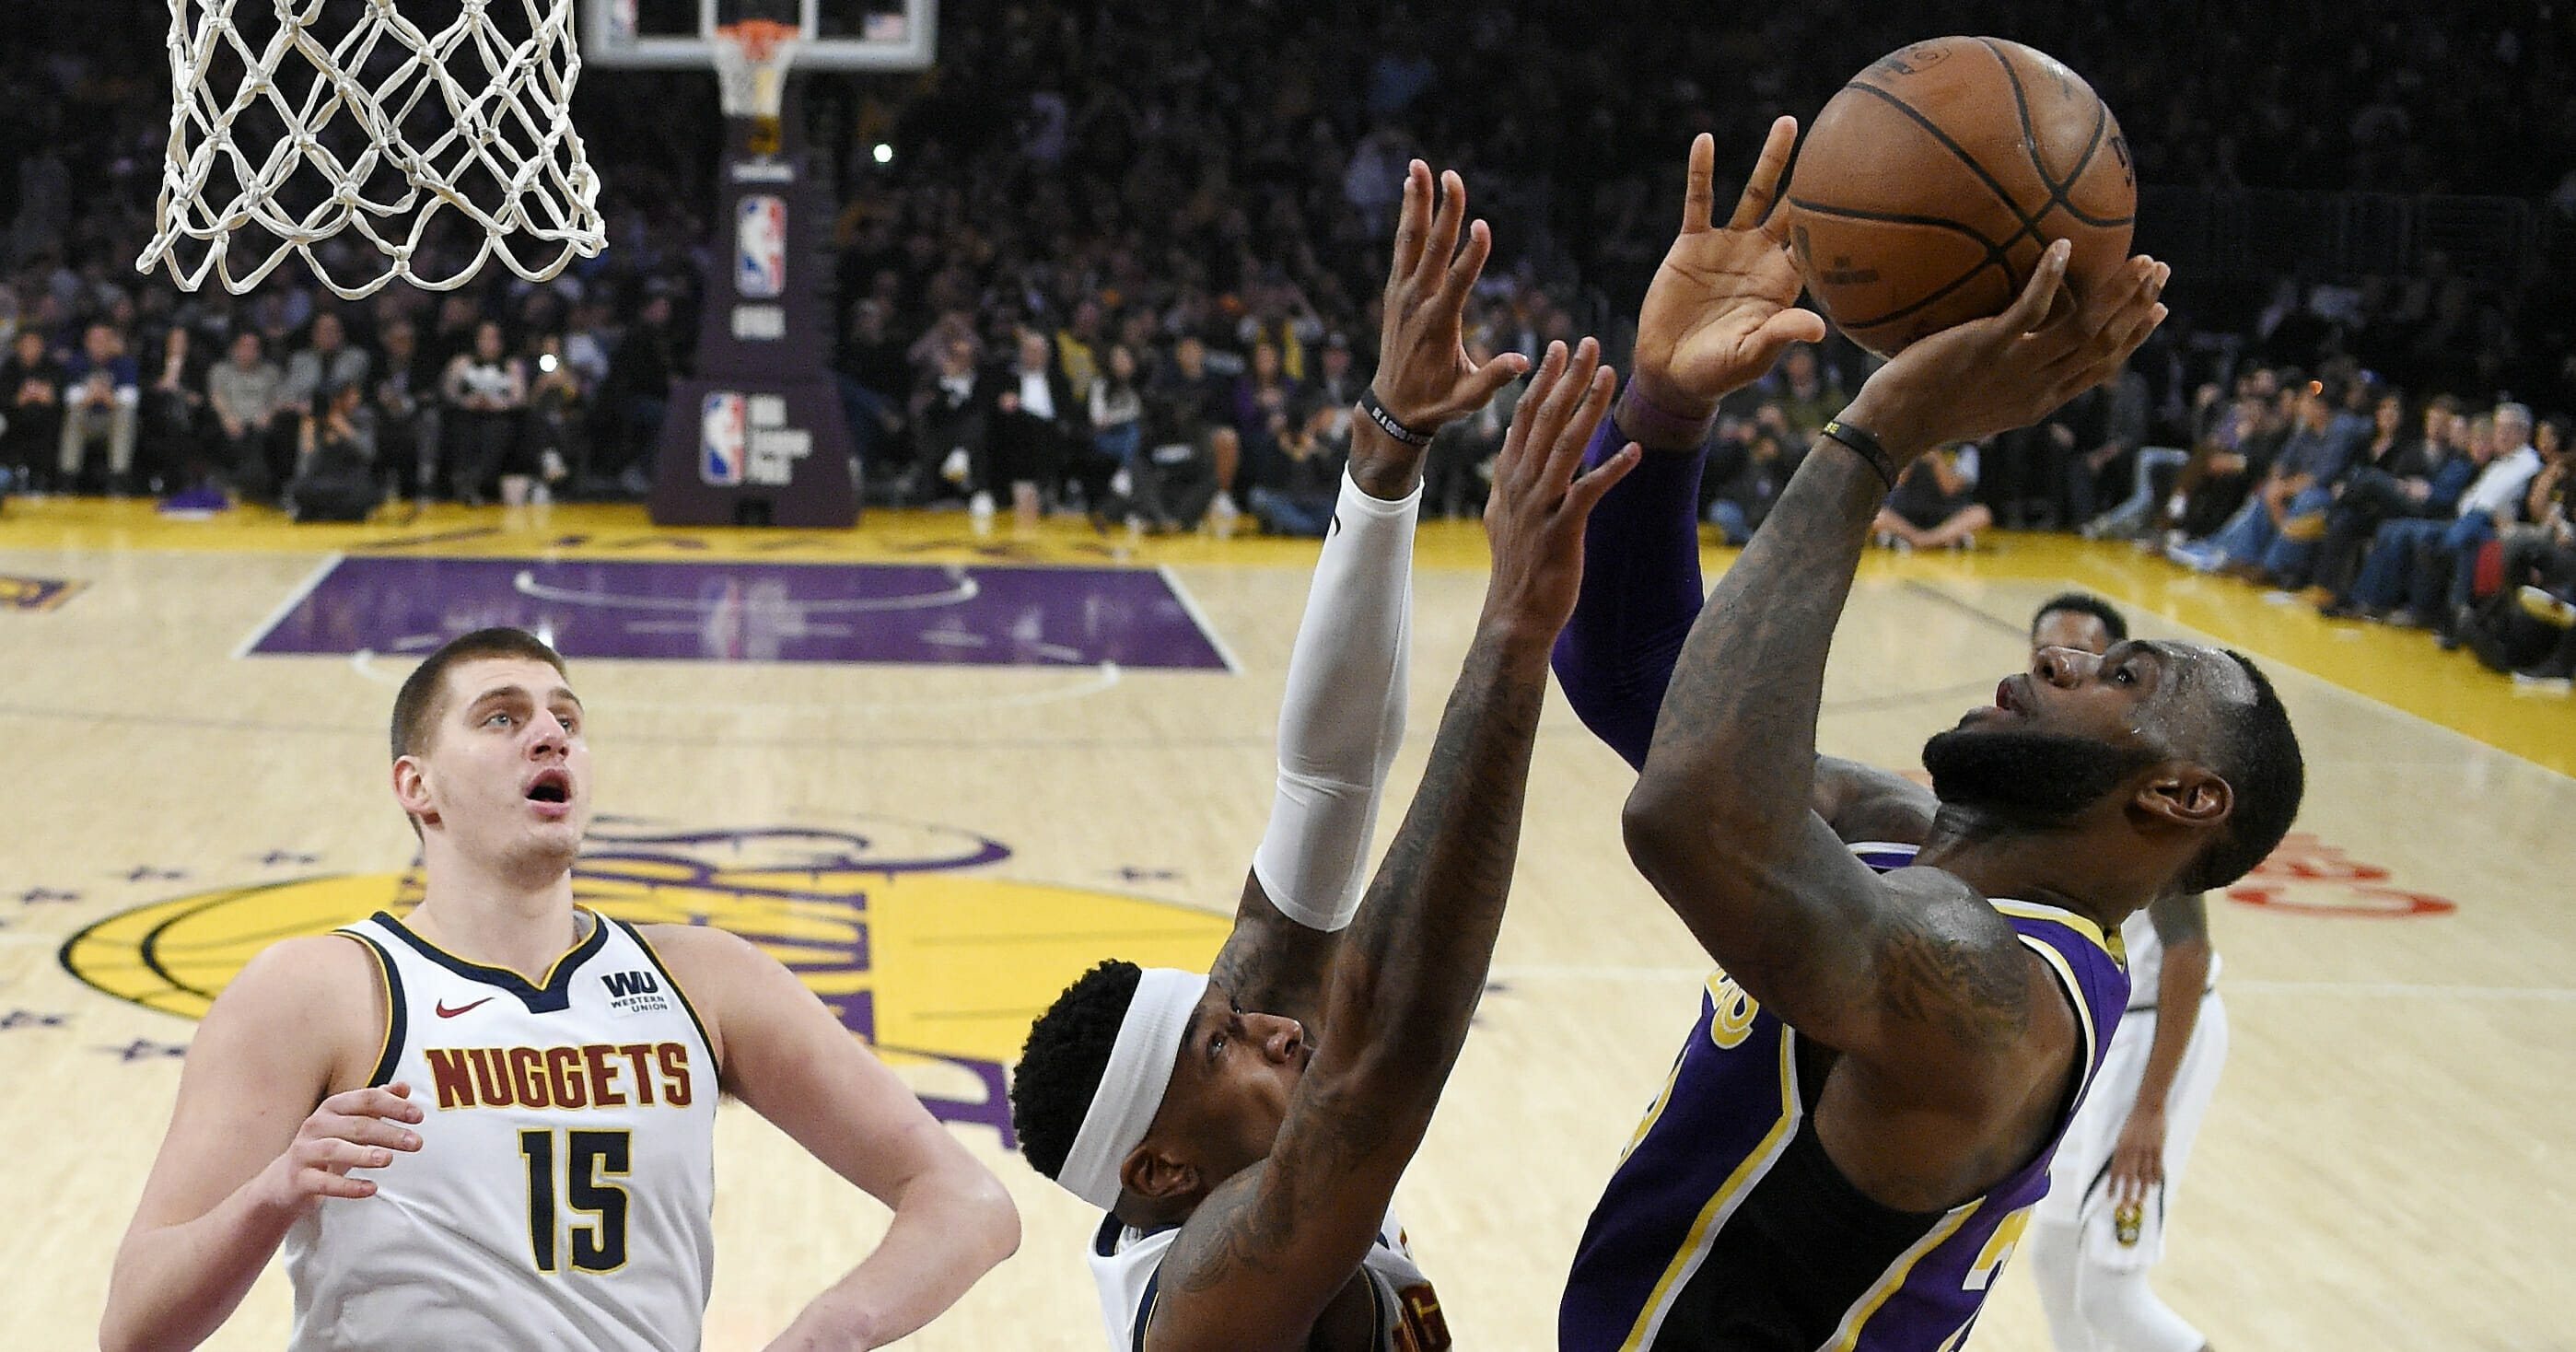 Los Angeles Lakers forward LeBron James shoots and scores against the Denver Nuggets on March 6, 2019 in Los Angeles